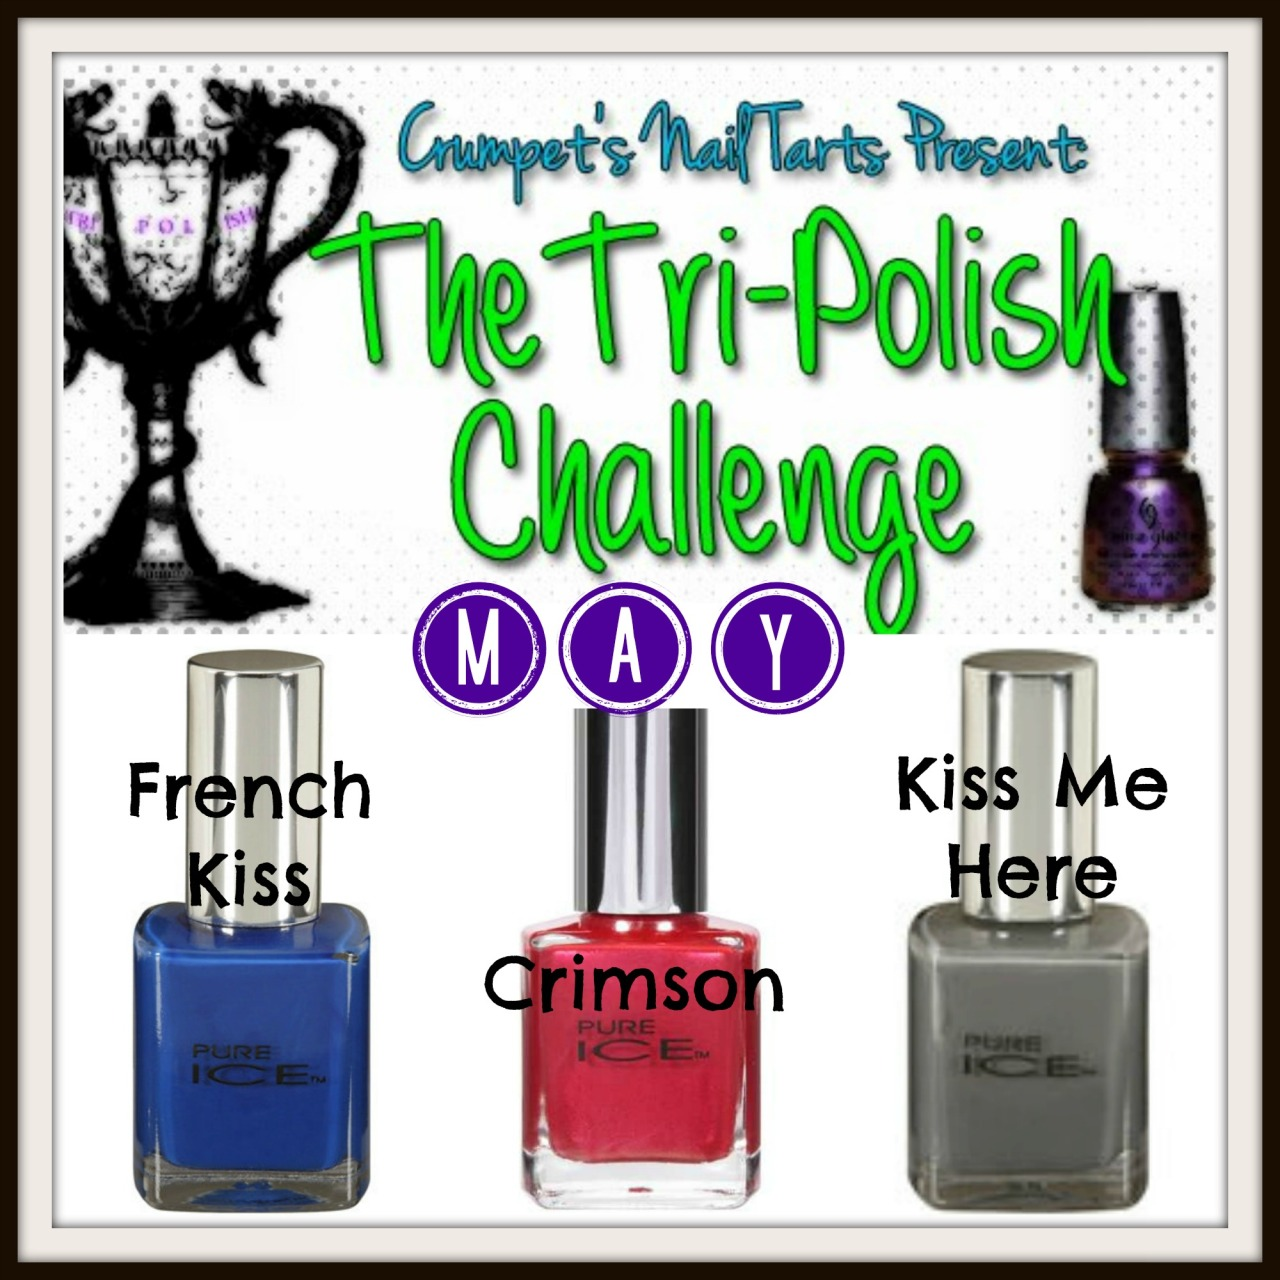 It's that time of the month again - time for the TRI-POLISH CHALLENGE! It starts tomorrow :D For May I've chosen Pure Ice as my brand o' the month and the colors are blue (French Kiss), red (Crimson), and grey (Kiss Me Here).